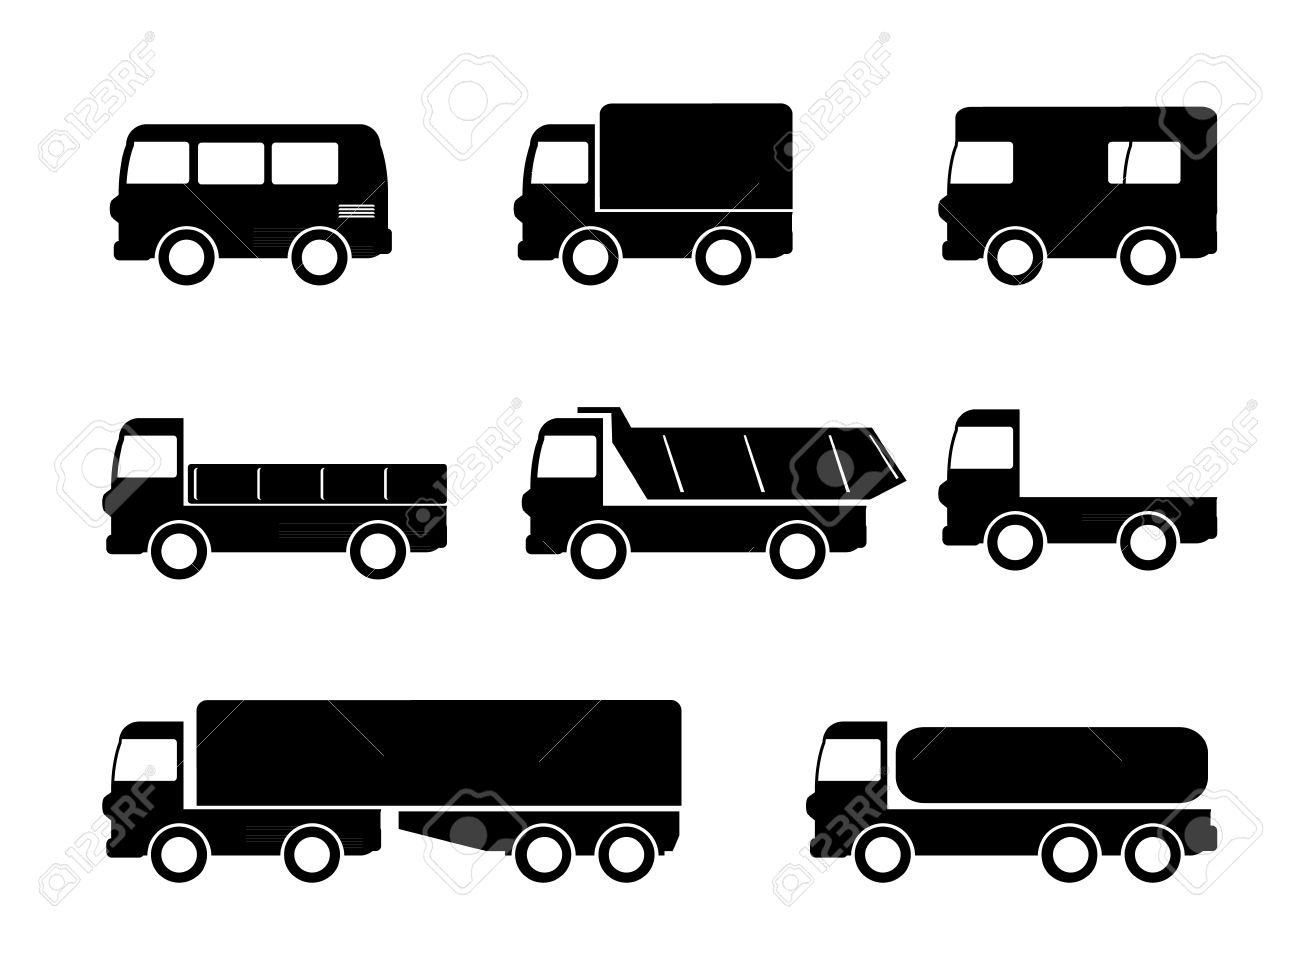 transport truck icons royalty free cliparts vectors and stock